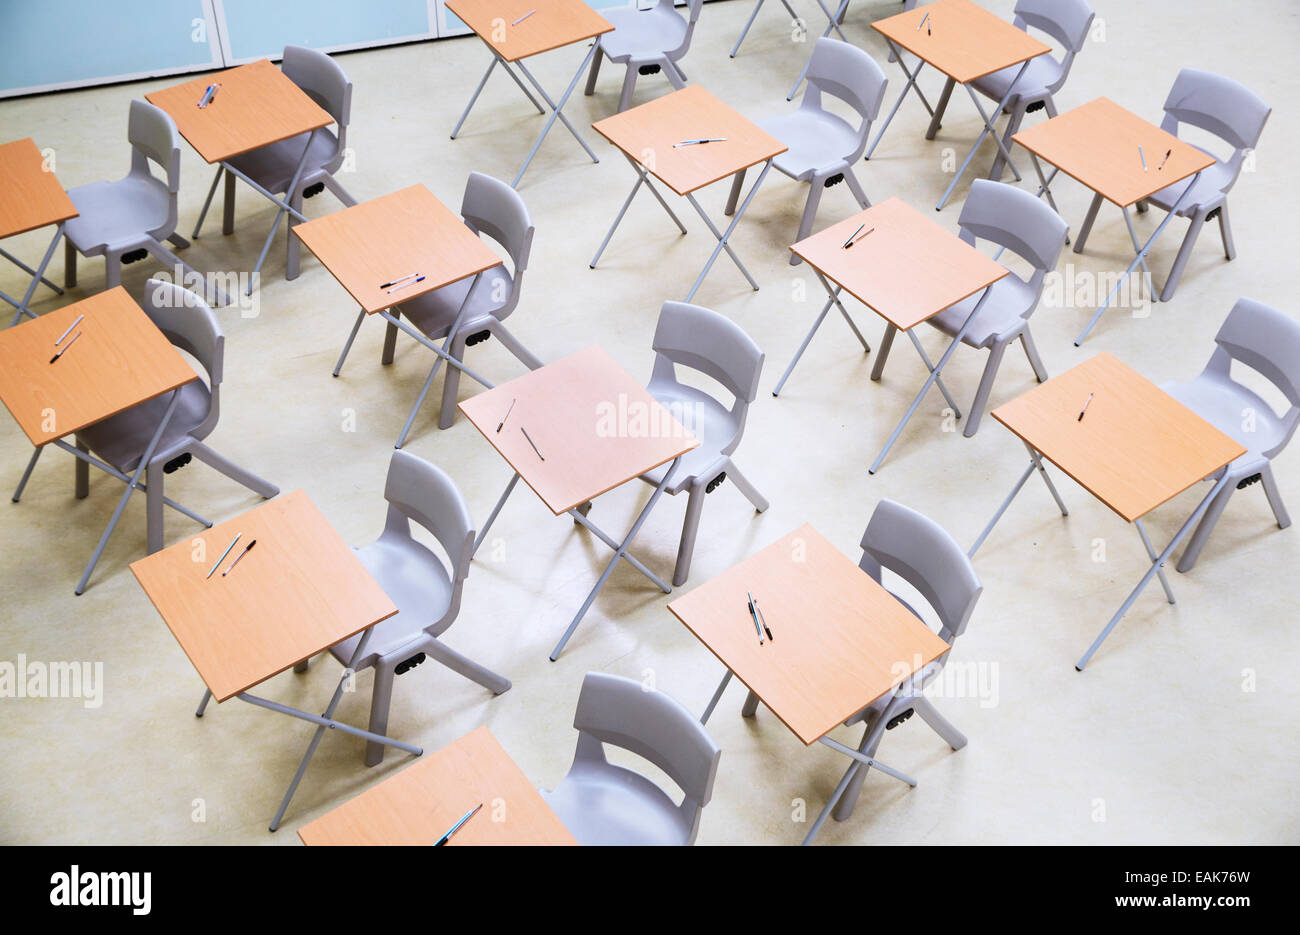 Elevated view of rows of desks and chairs in empty classroom - Stock Image